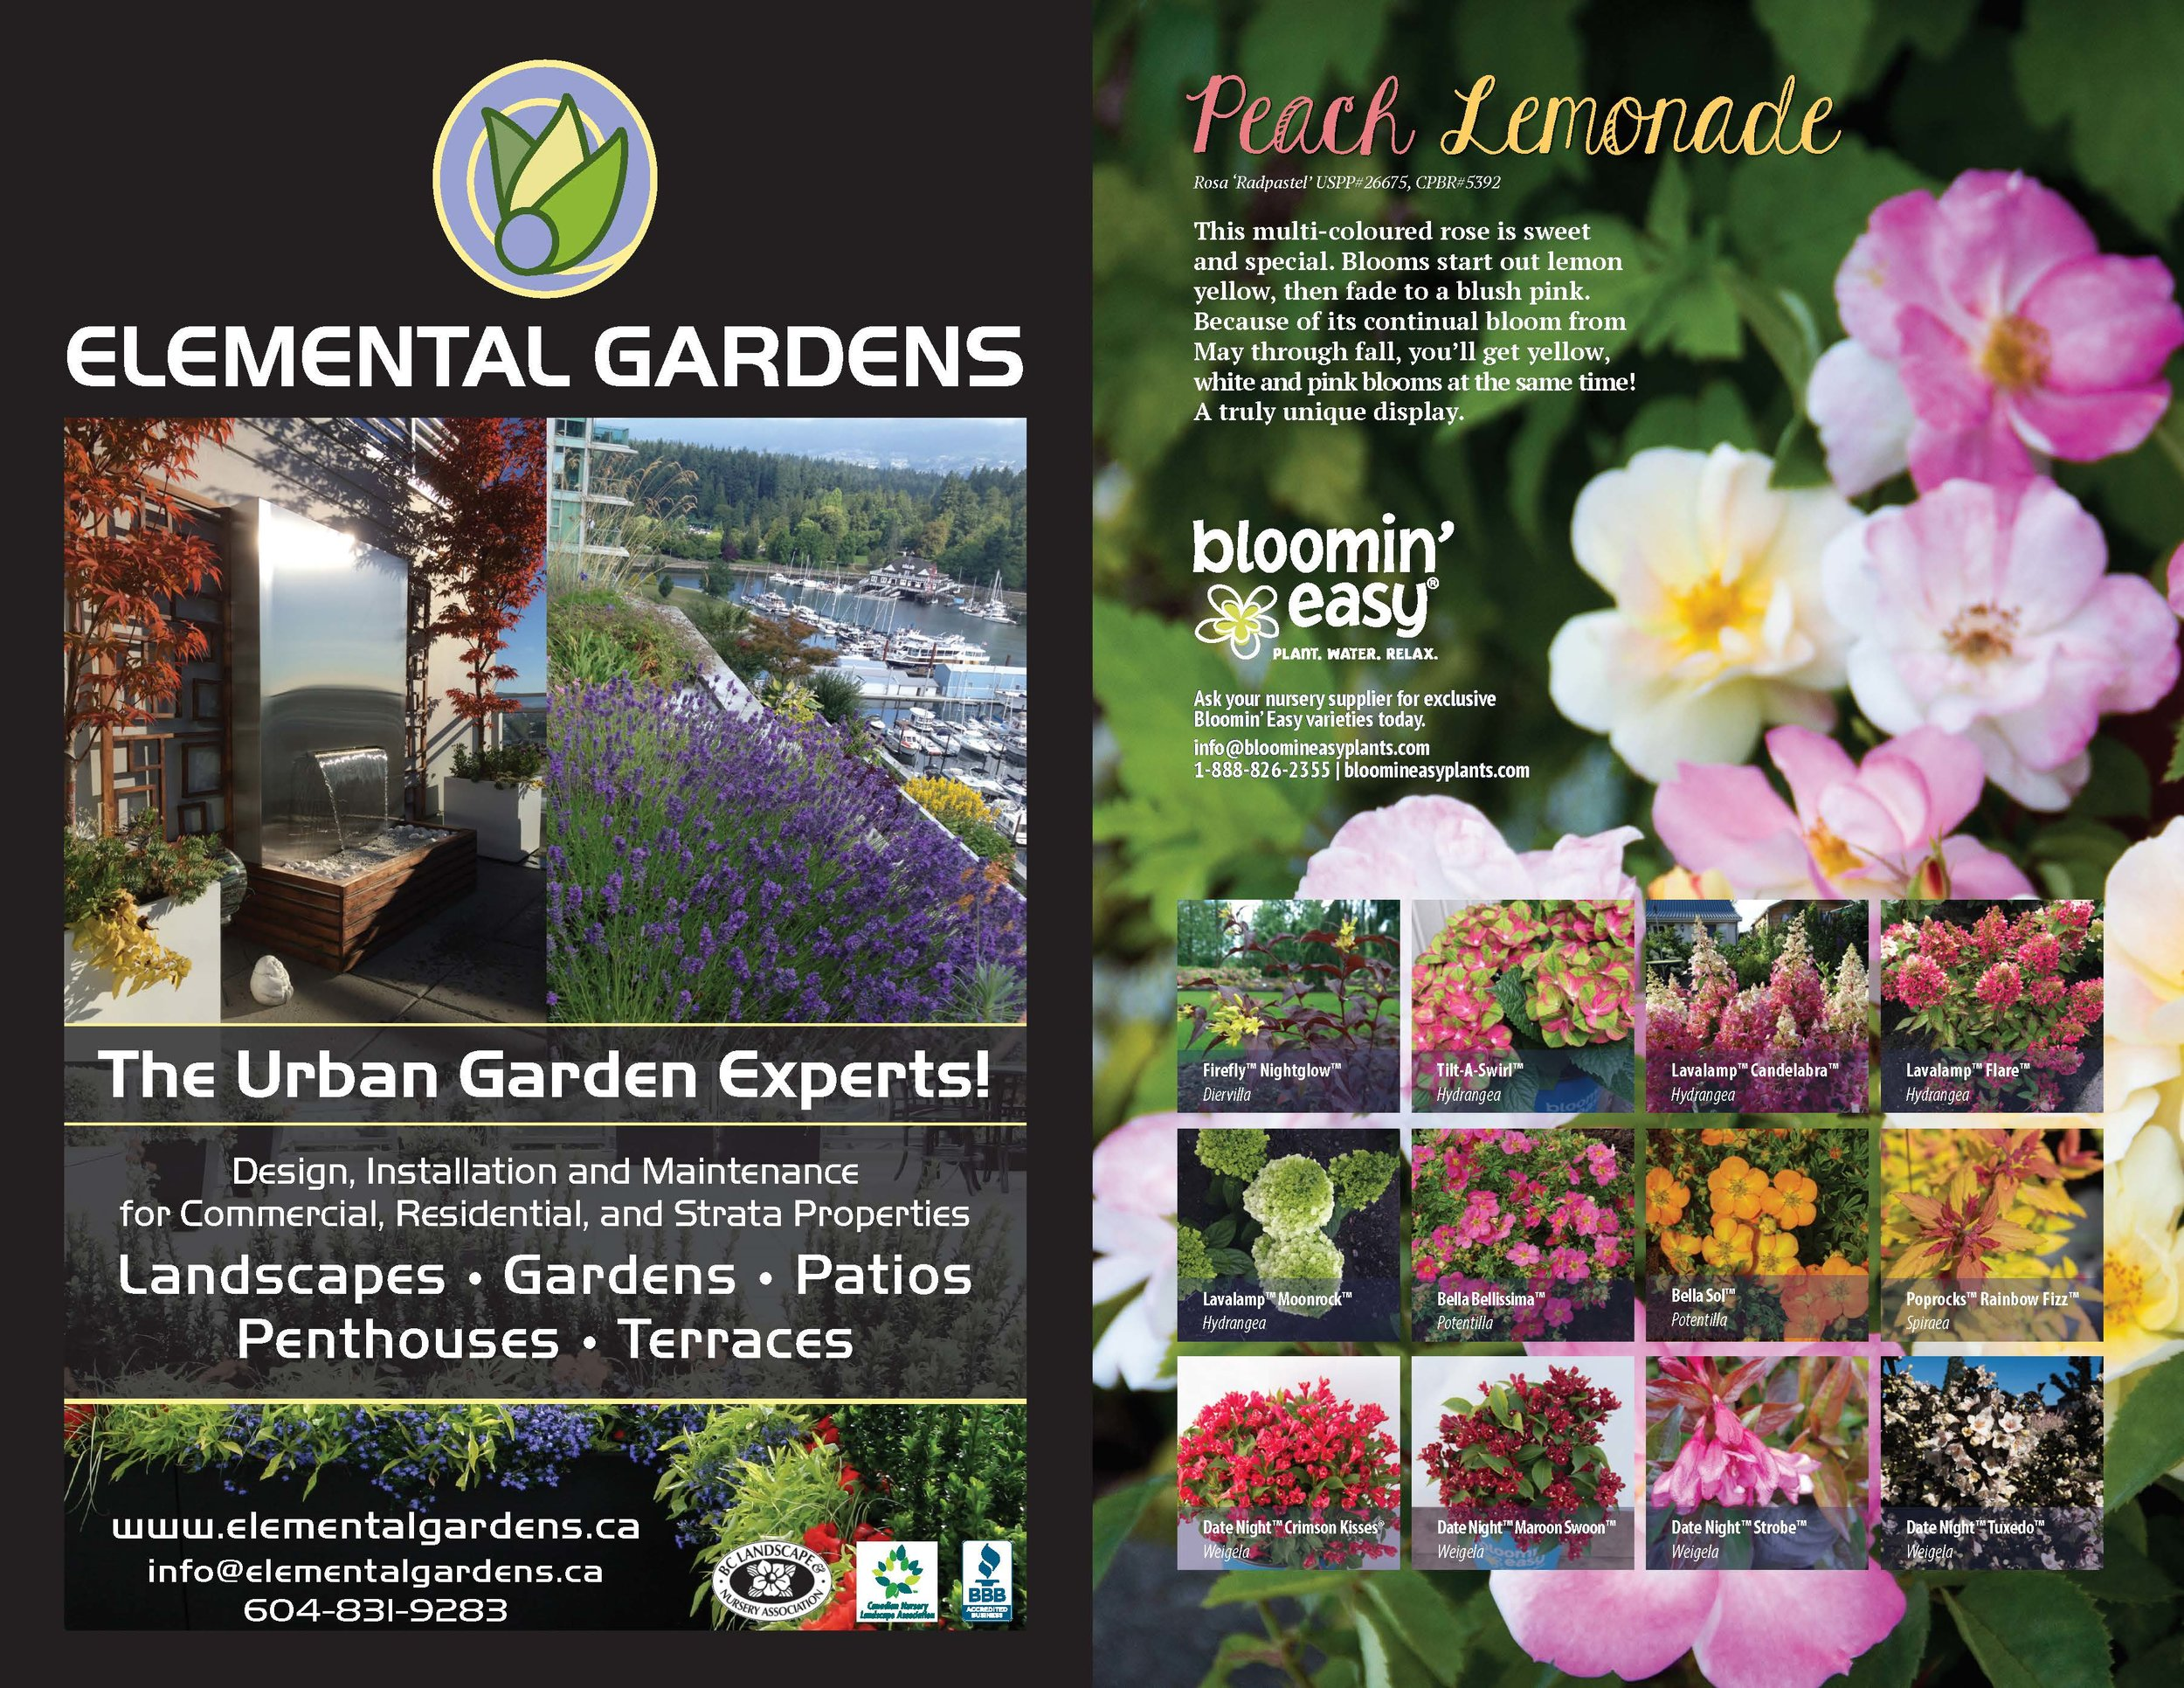 BCLNA_GardenWise_Booklet_FA_ReaderSpreads_Page_02.jpg